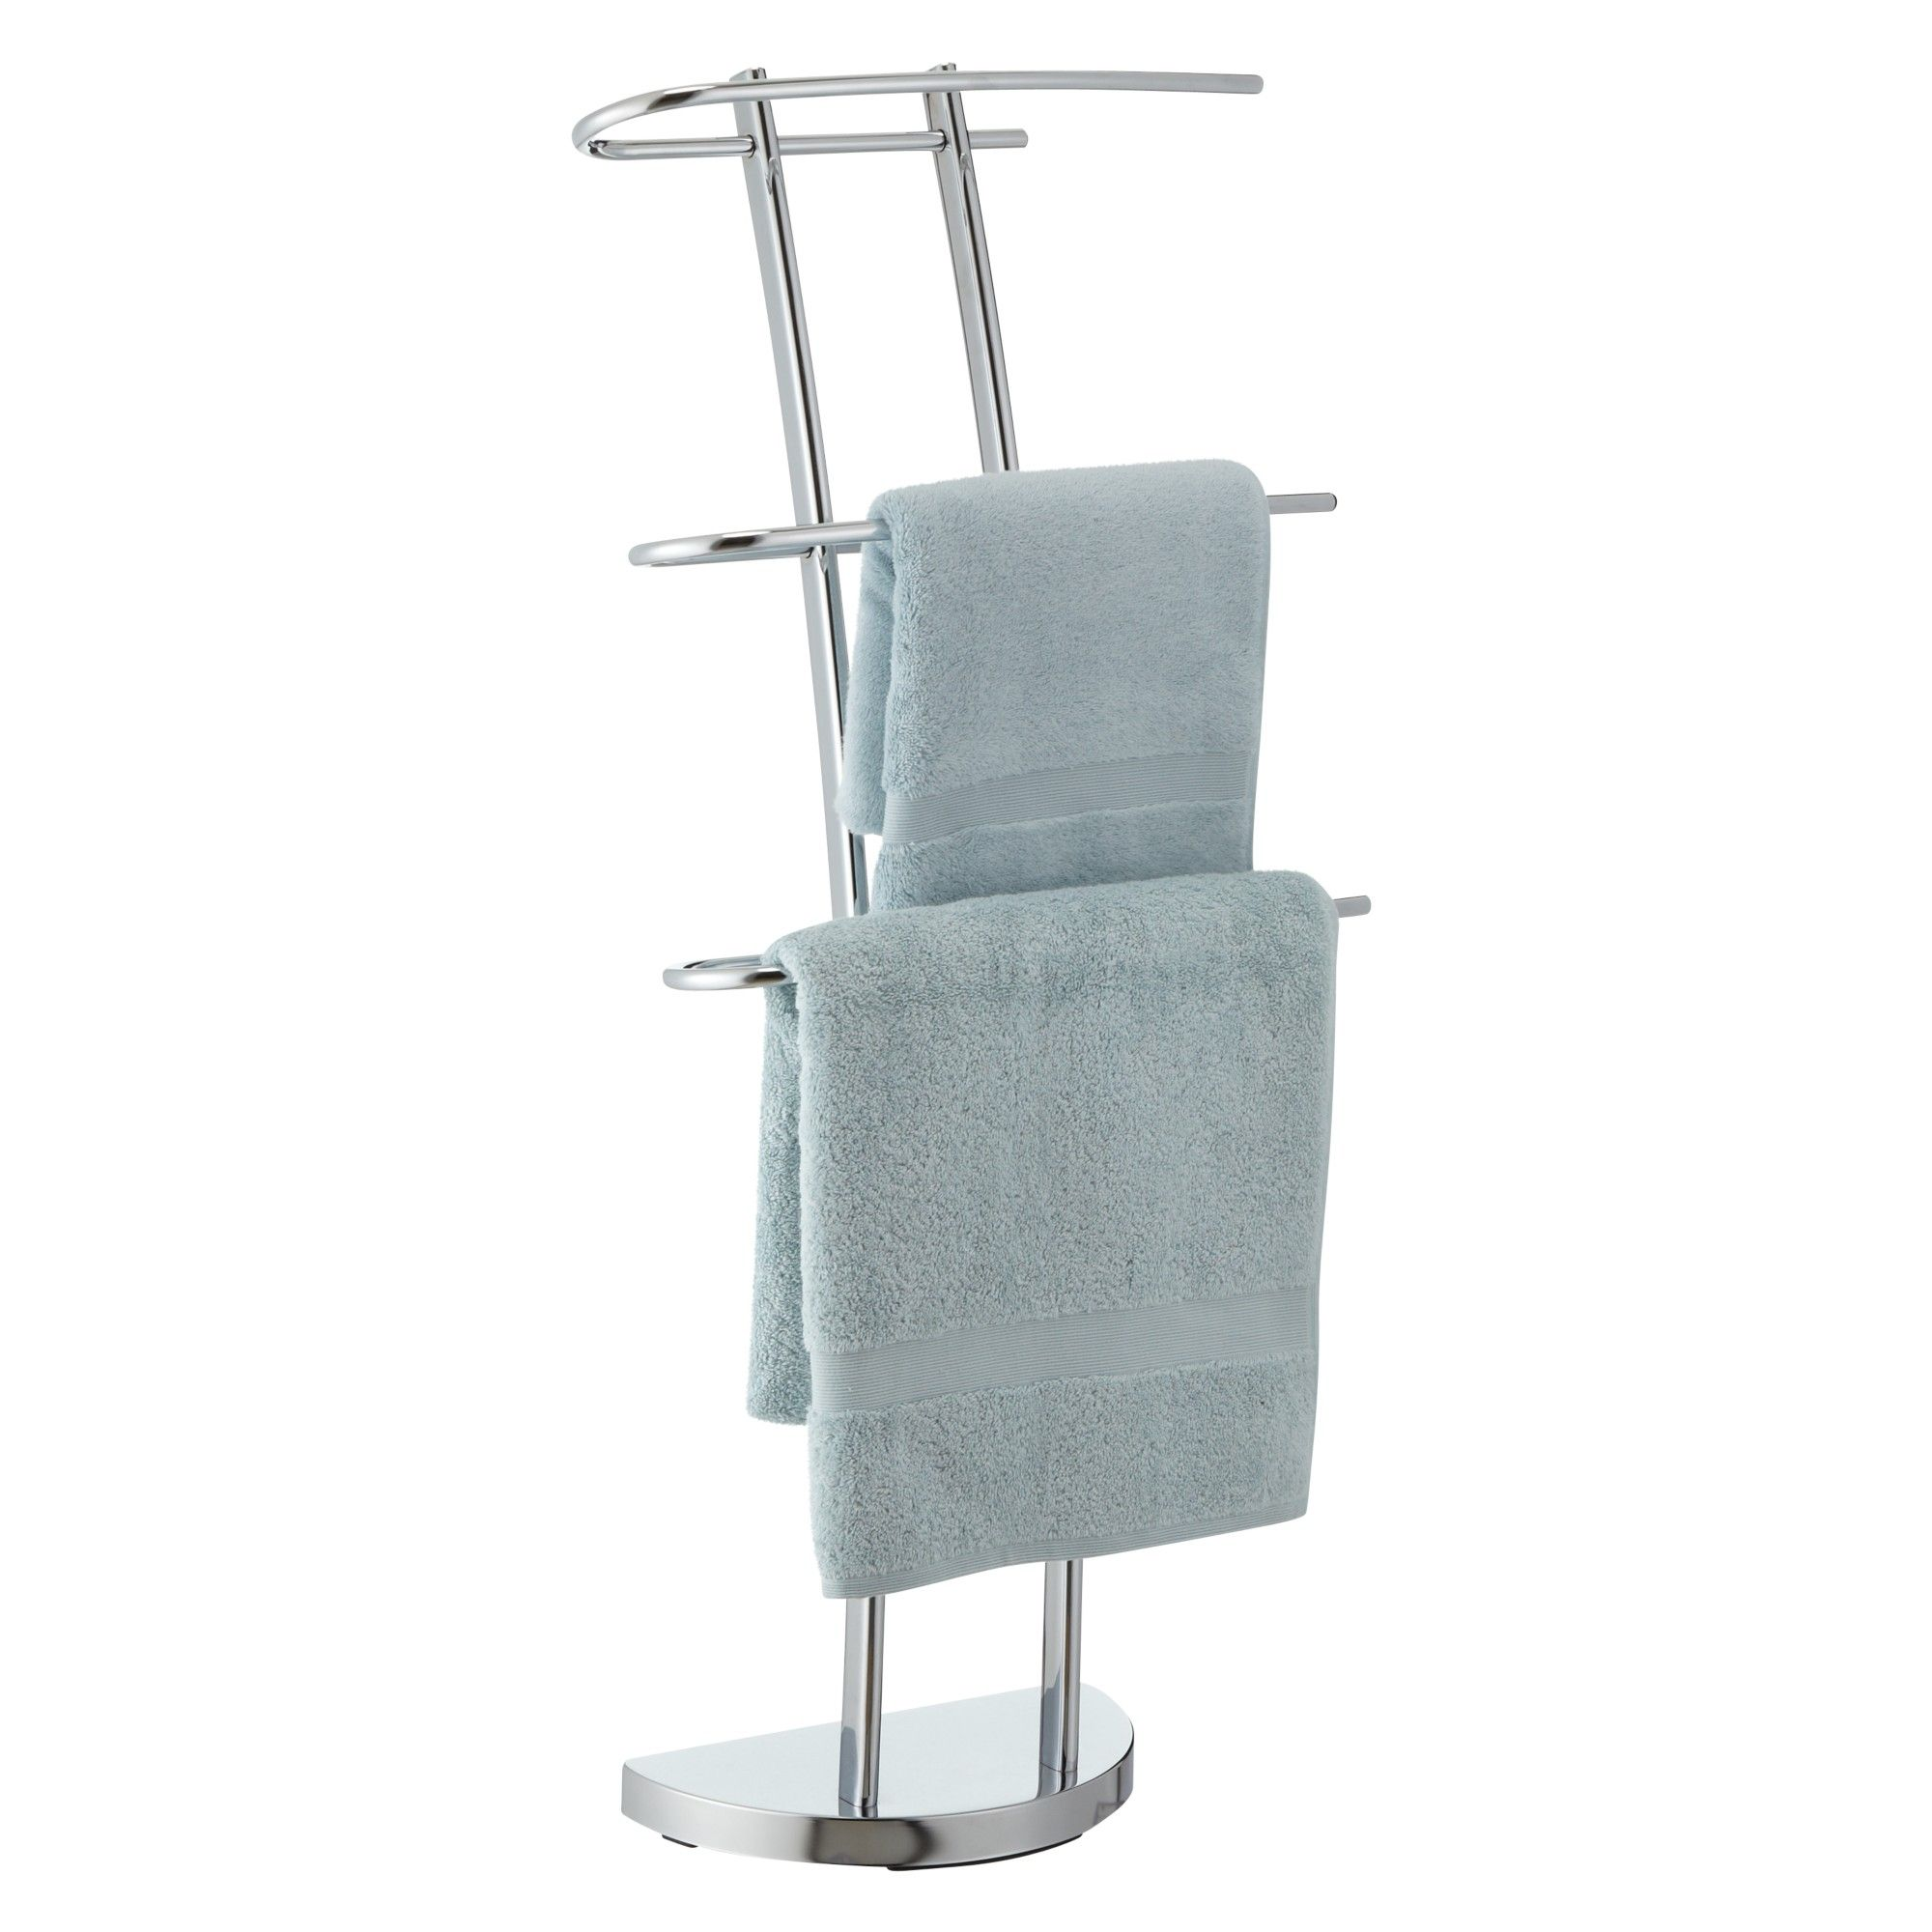 Shine 3 Arm Towel Stand | John lewis, Towels and Towel rail